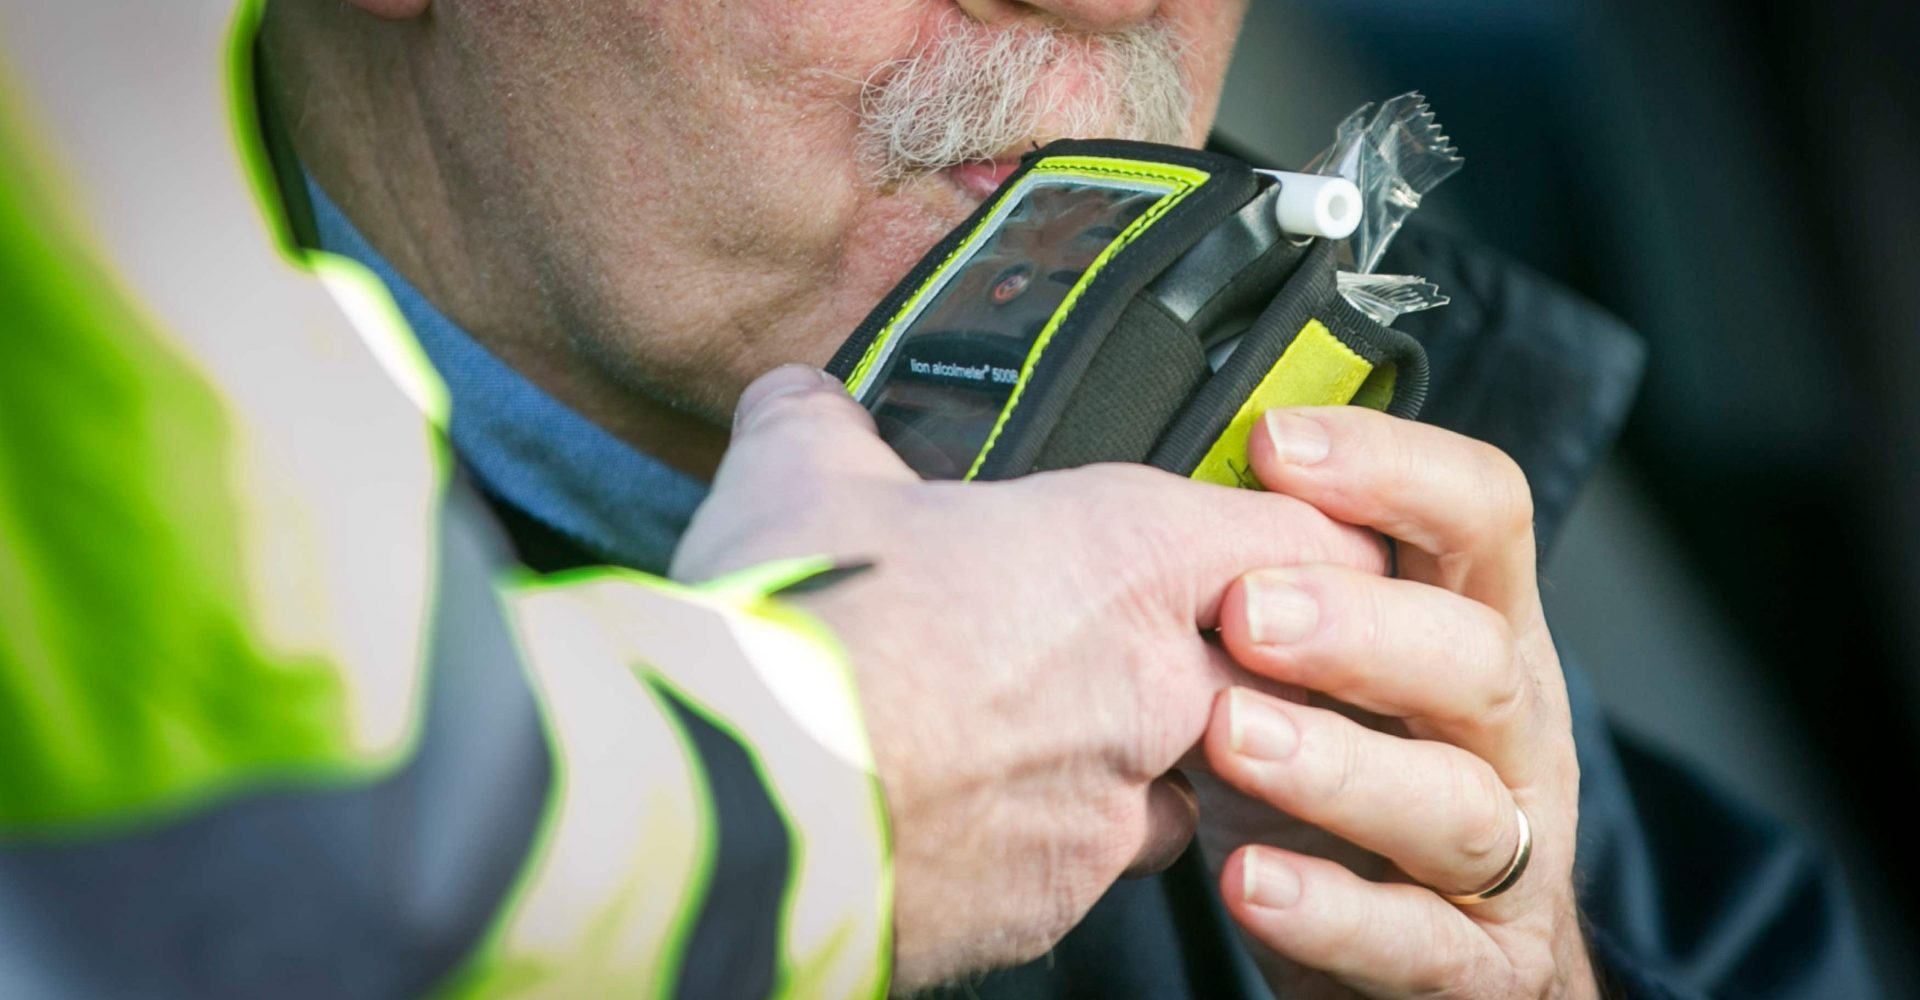 Drink driving is the most common reason UK motorists lose their licence